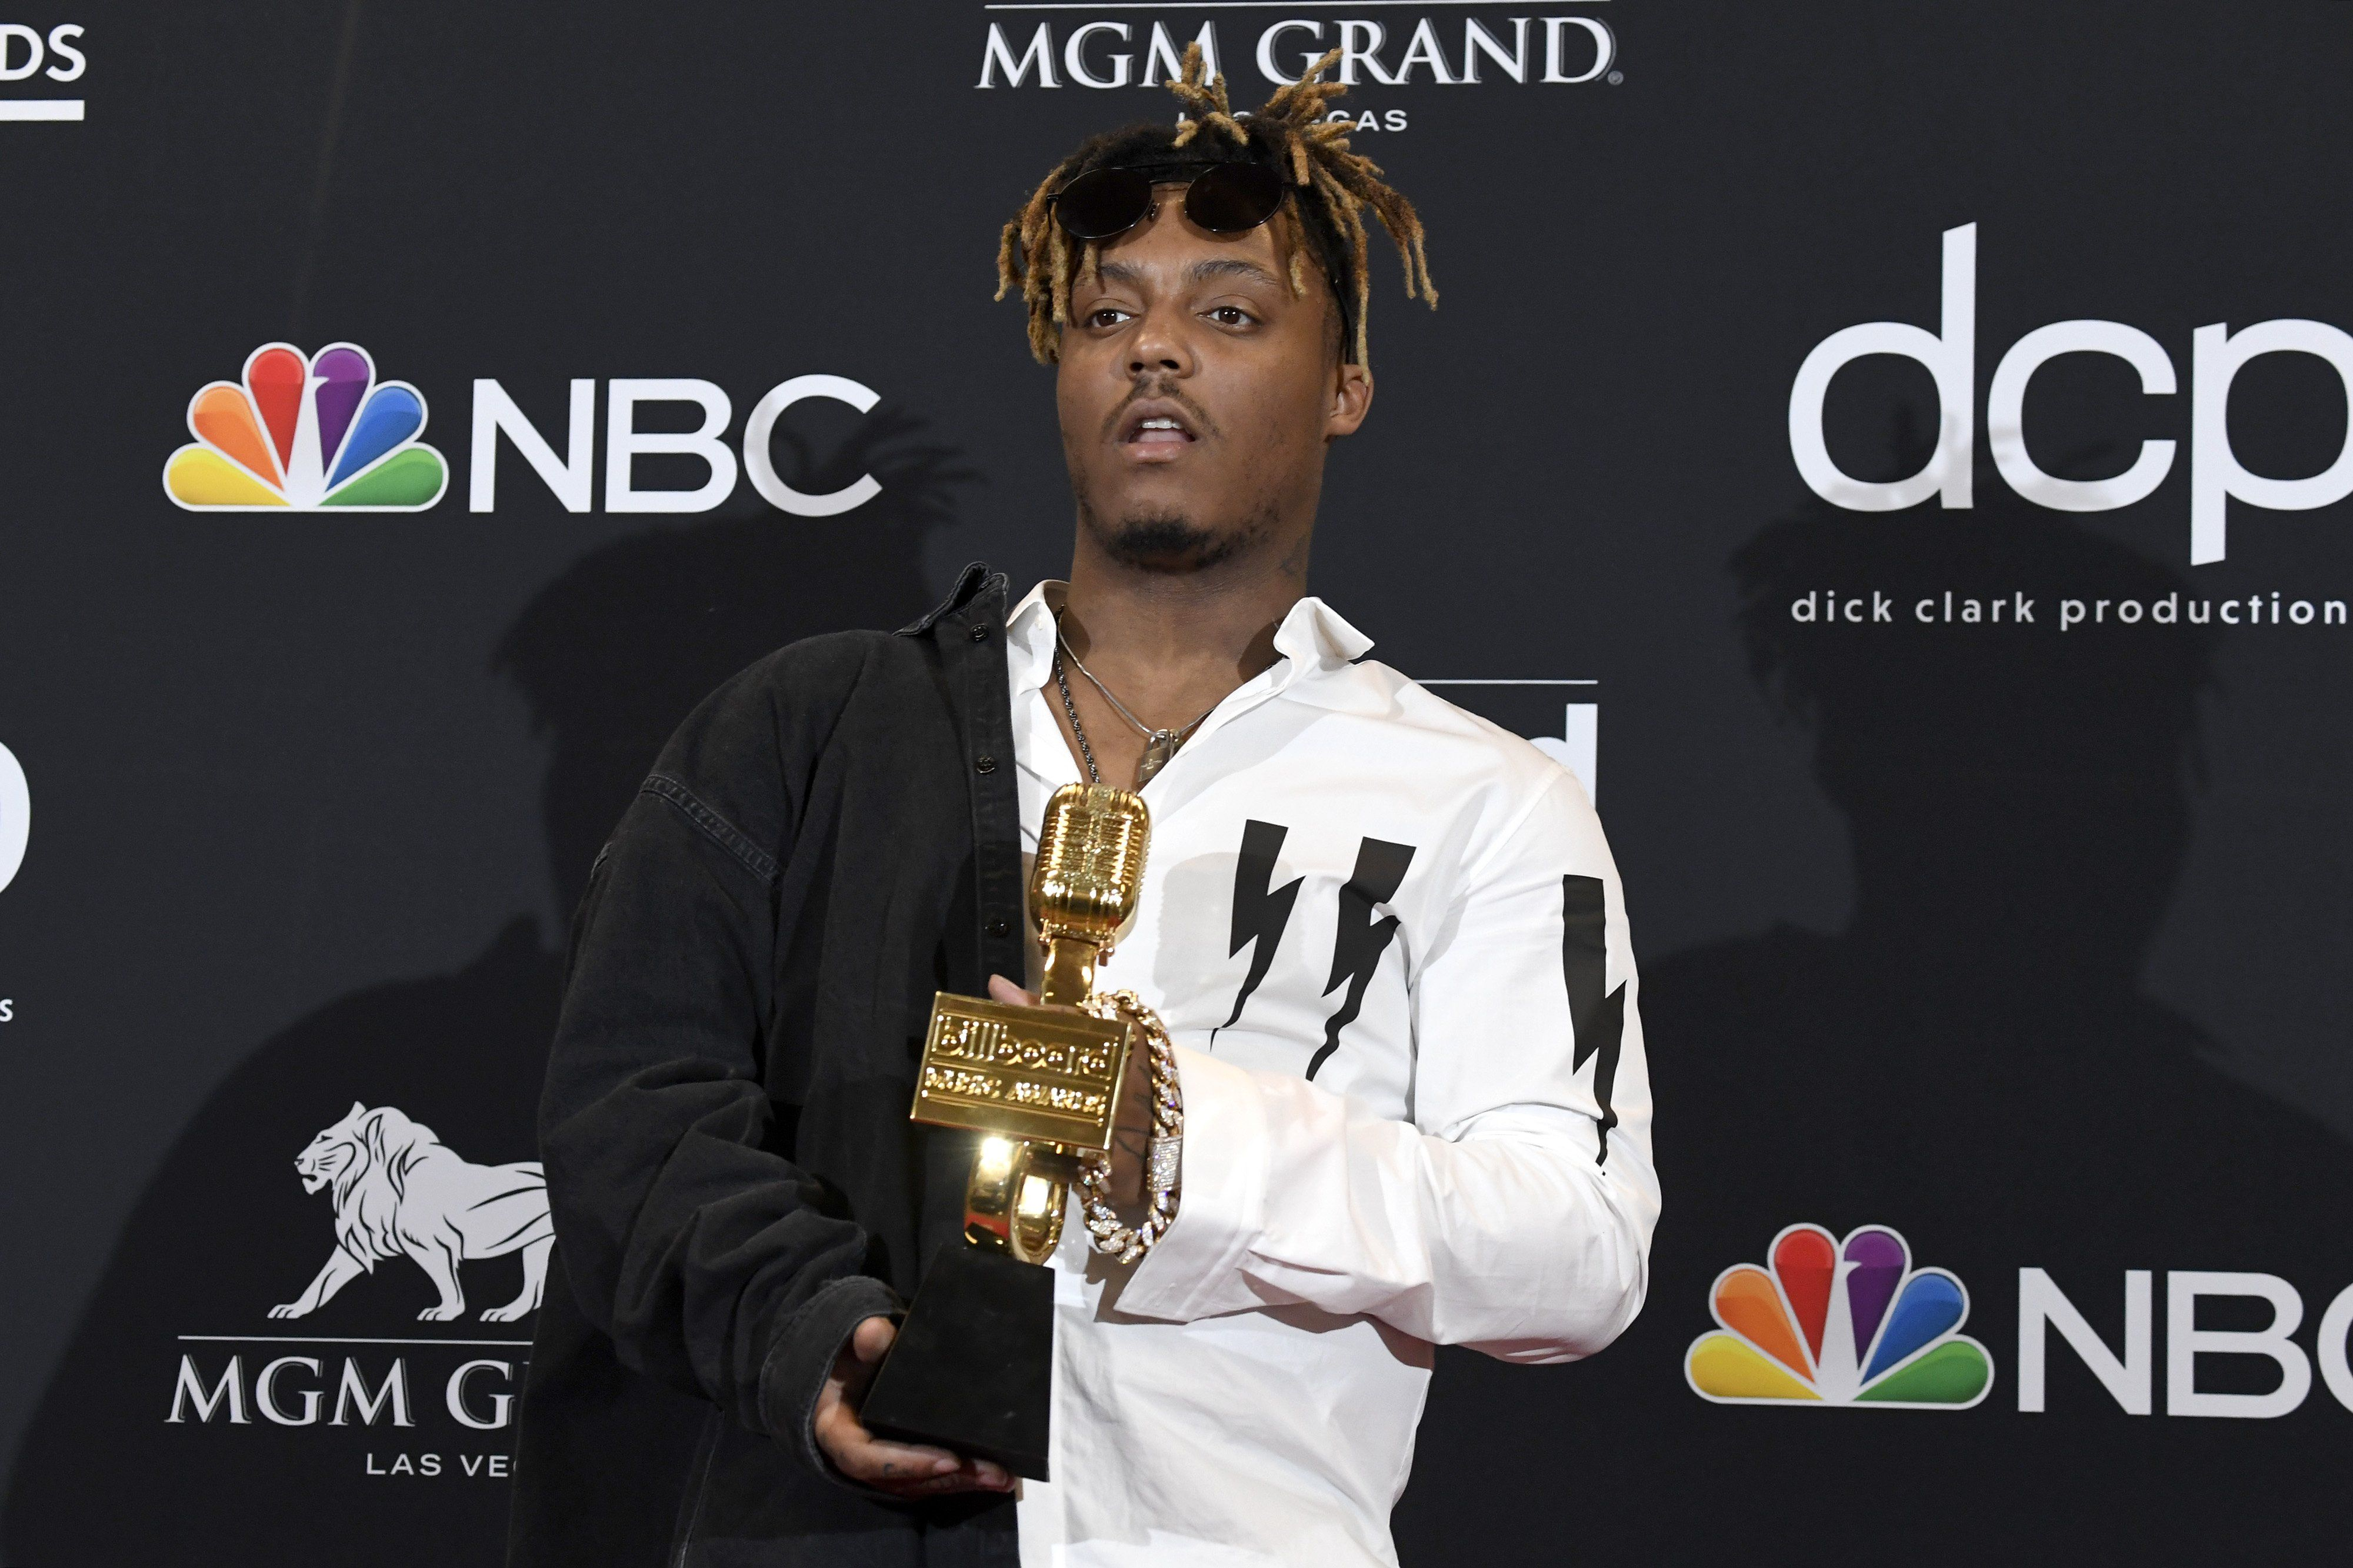 Reports Chicago rapper Juice WRLD dies after suffering